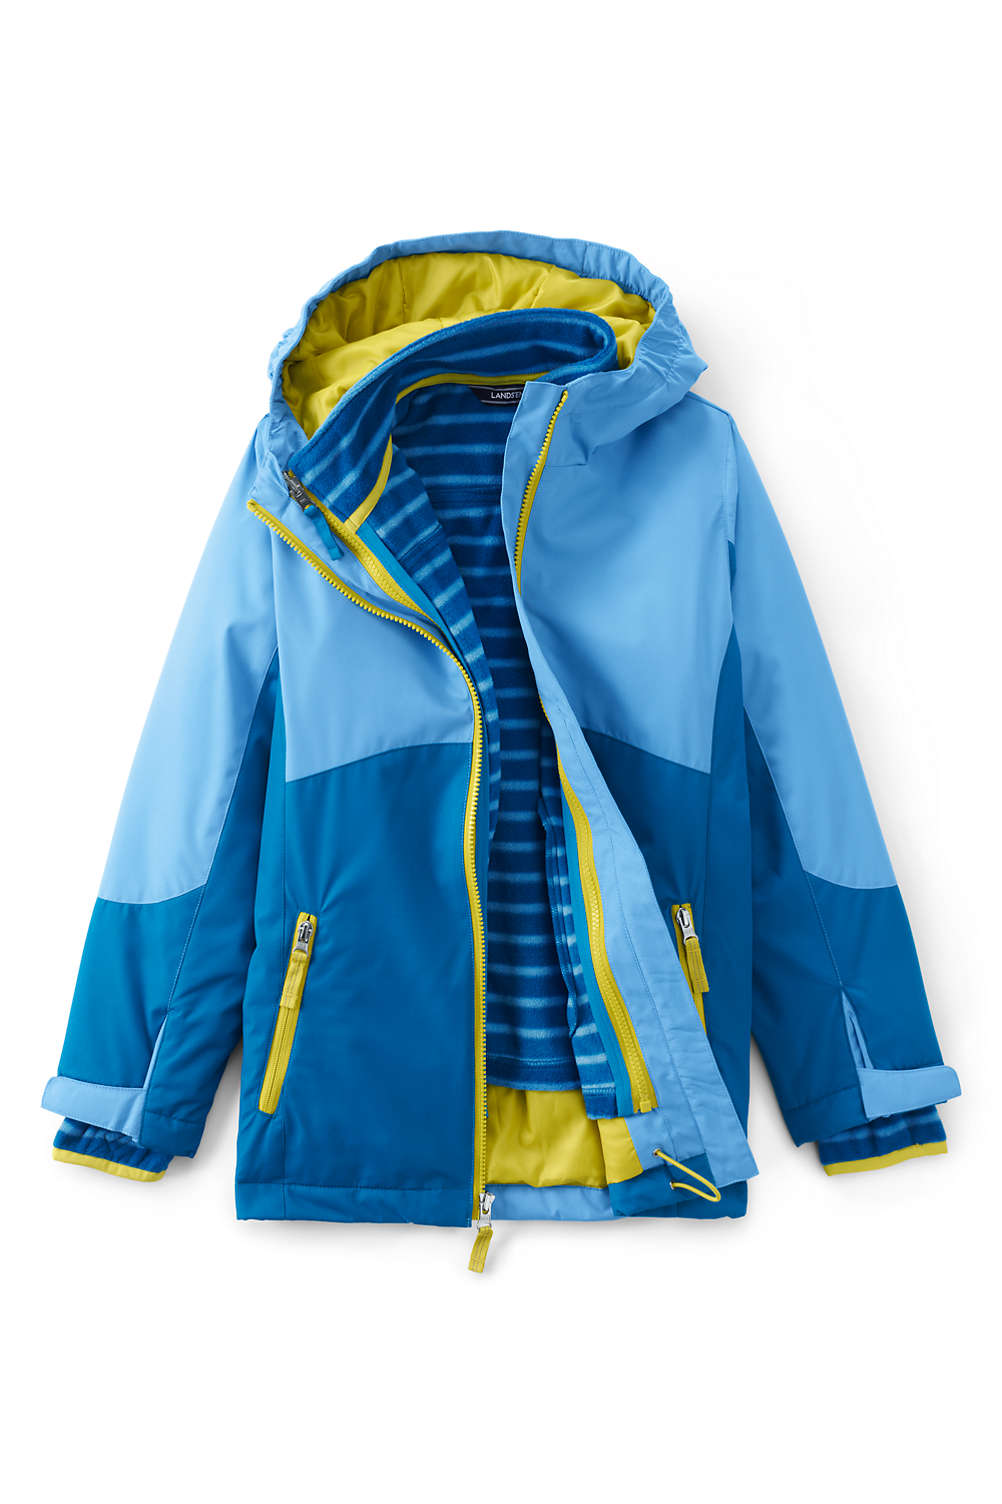 36ca3b9a7 Girls Stormer 3 in 1 Winter Parka from Lands' End